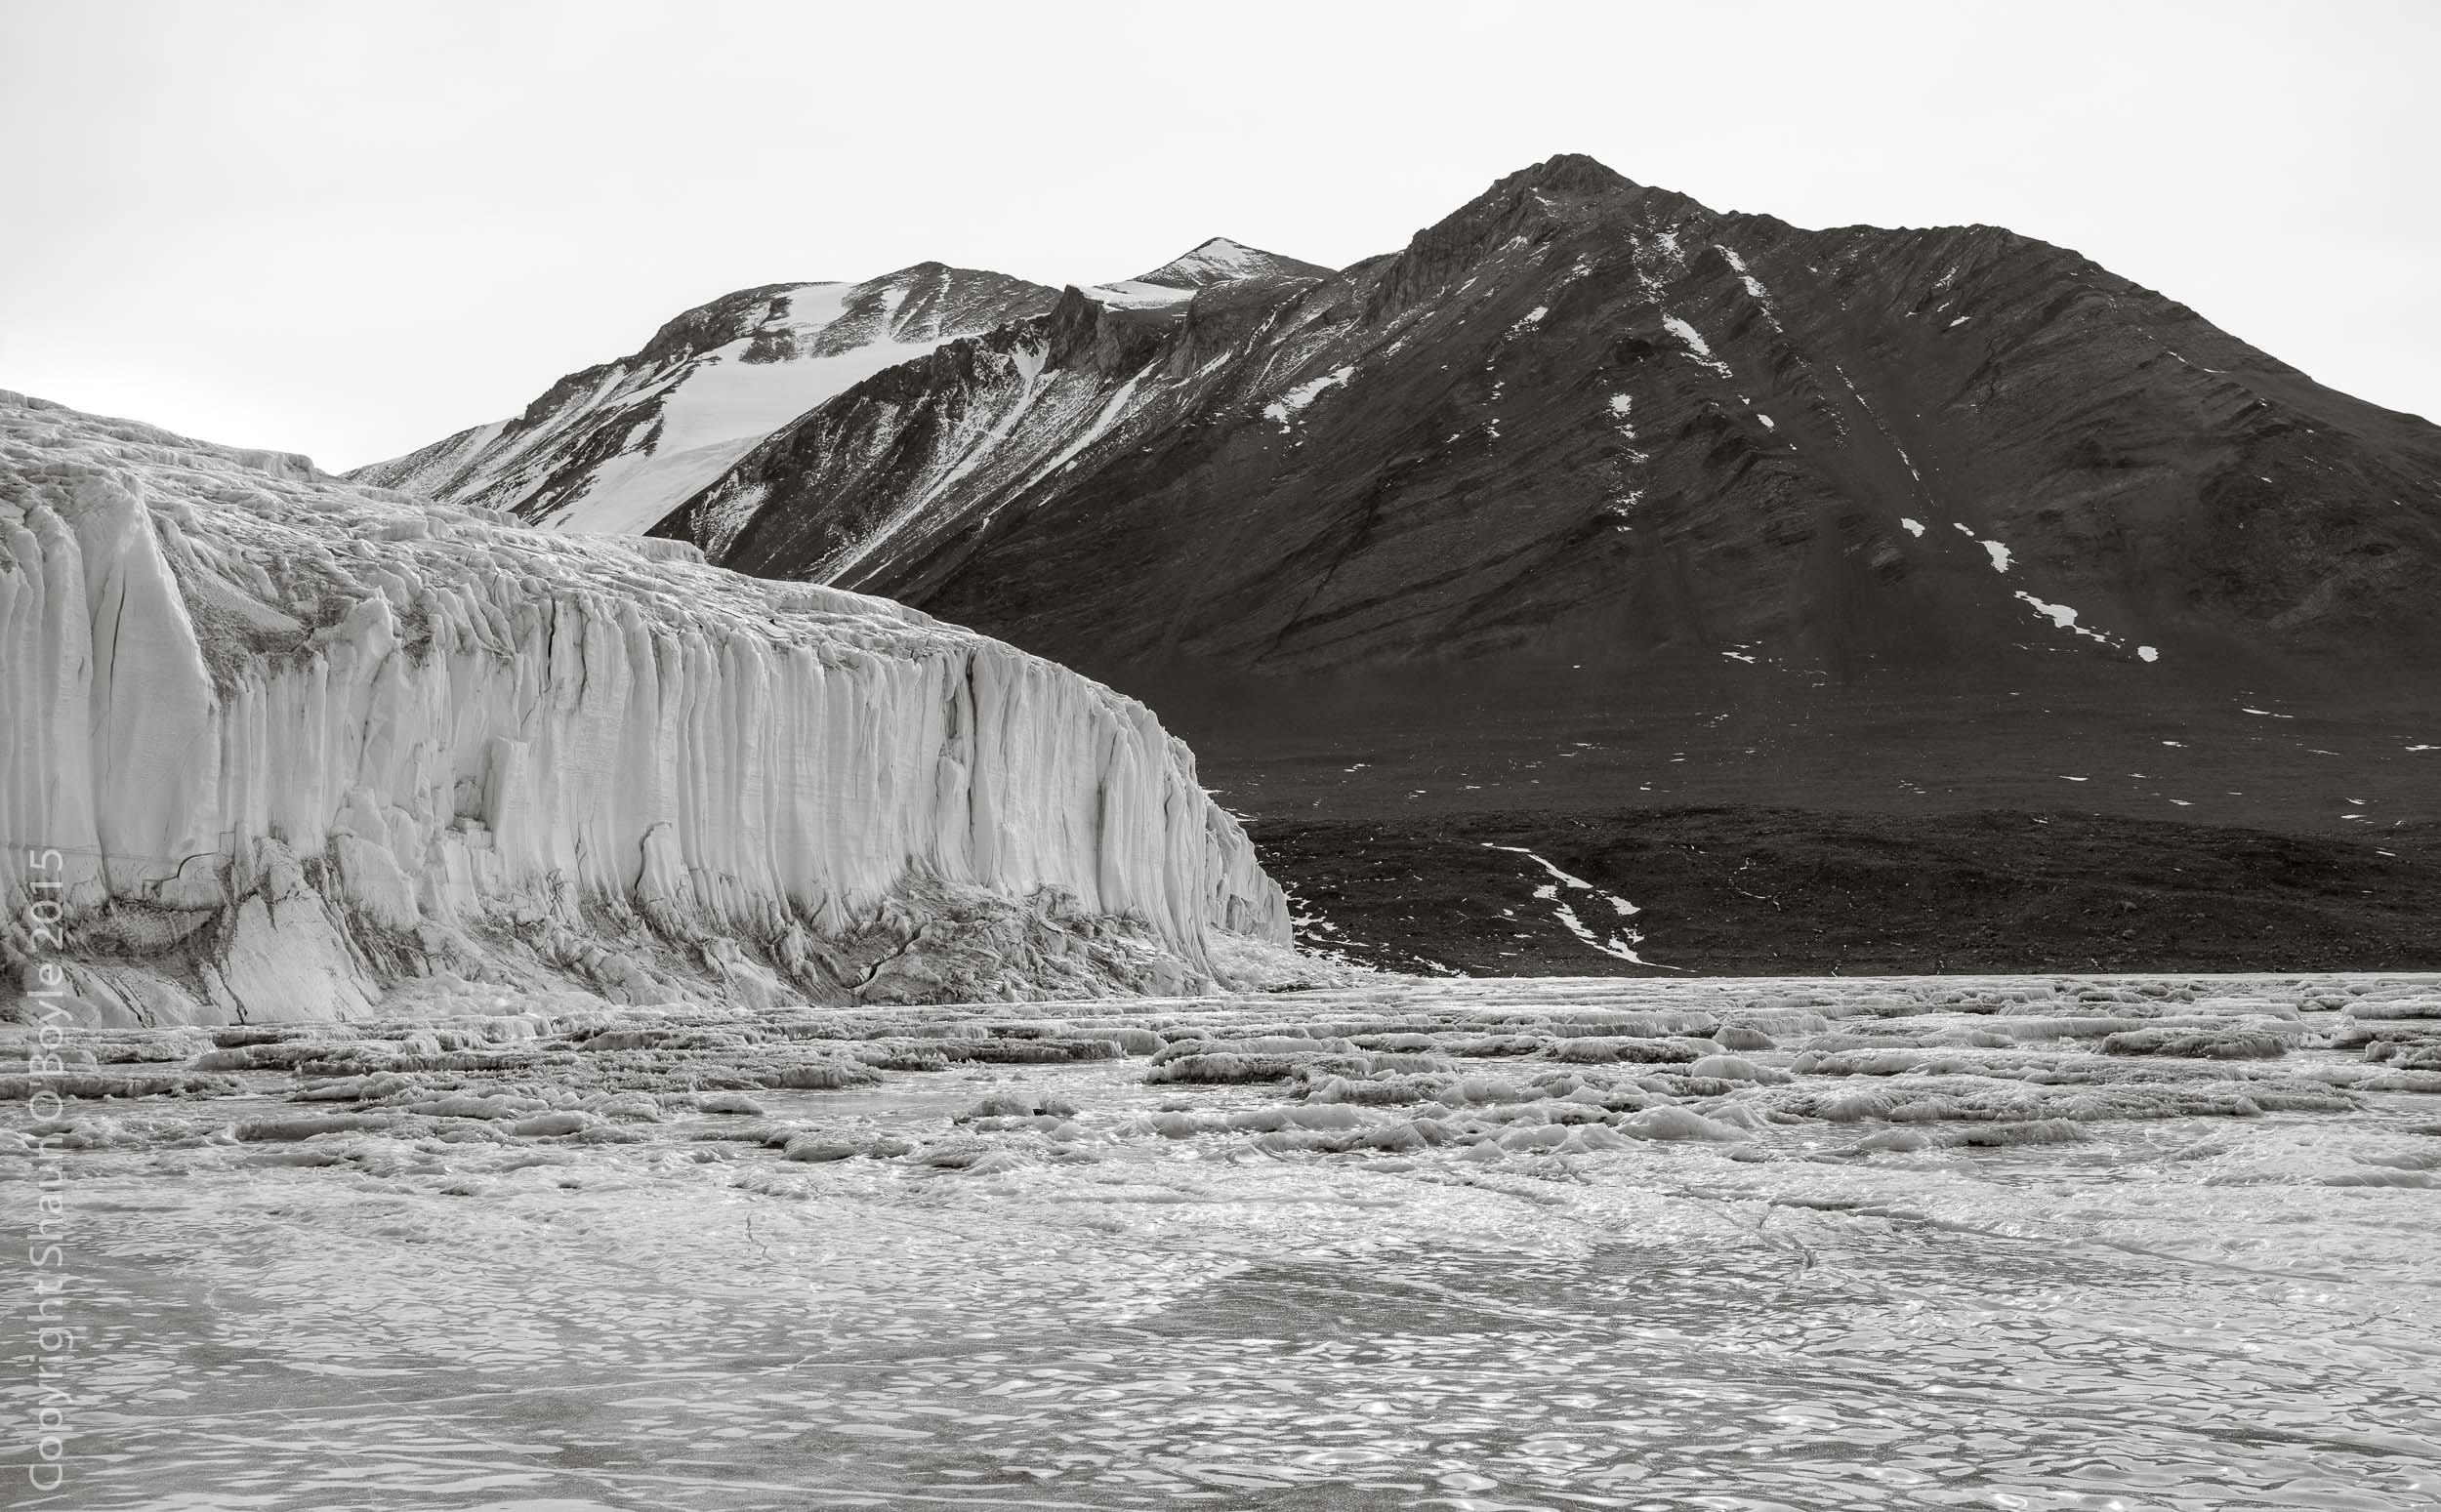 Canada Glacier from Lake Fryxell